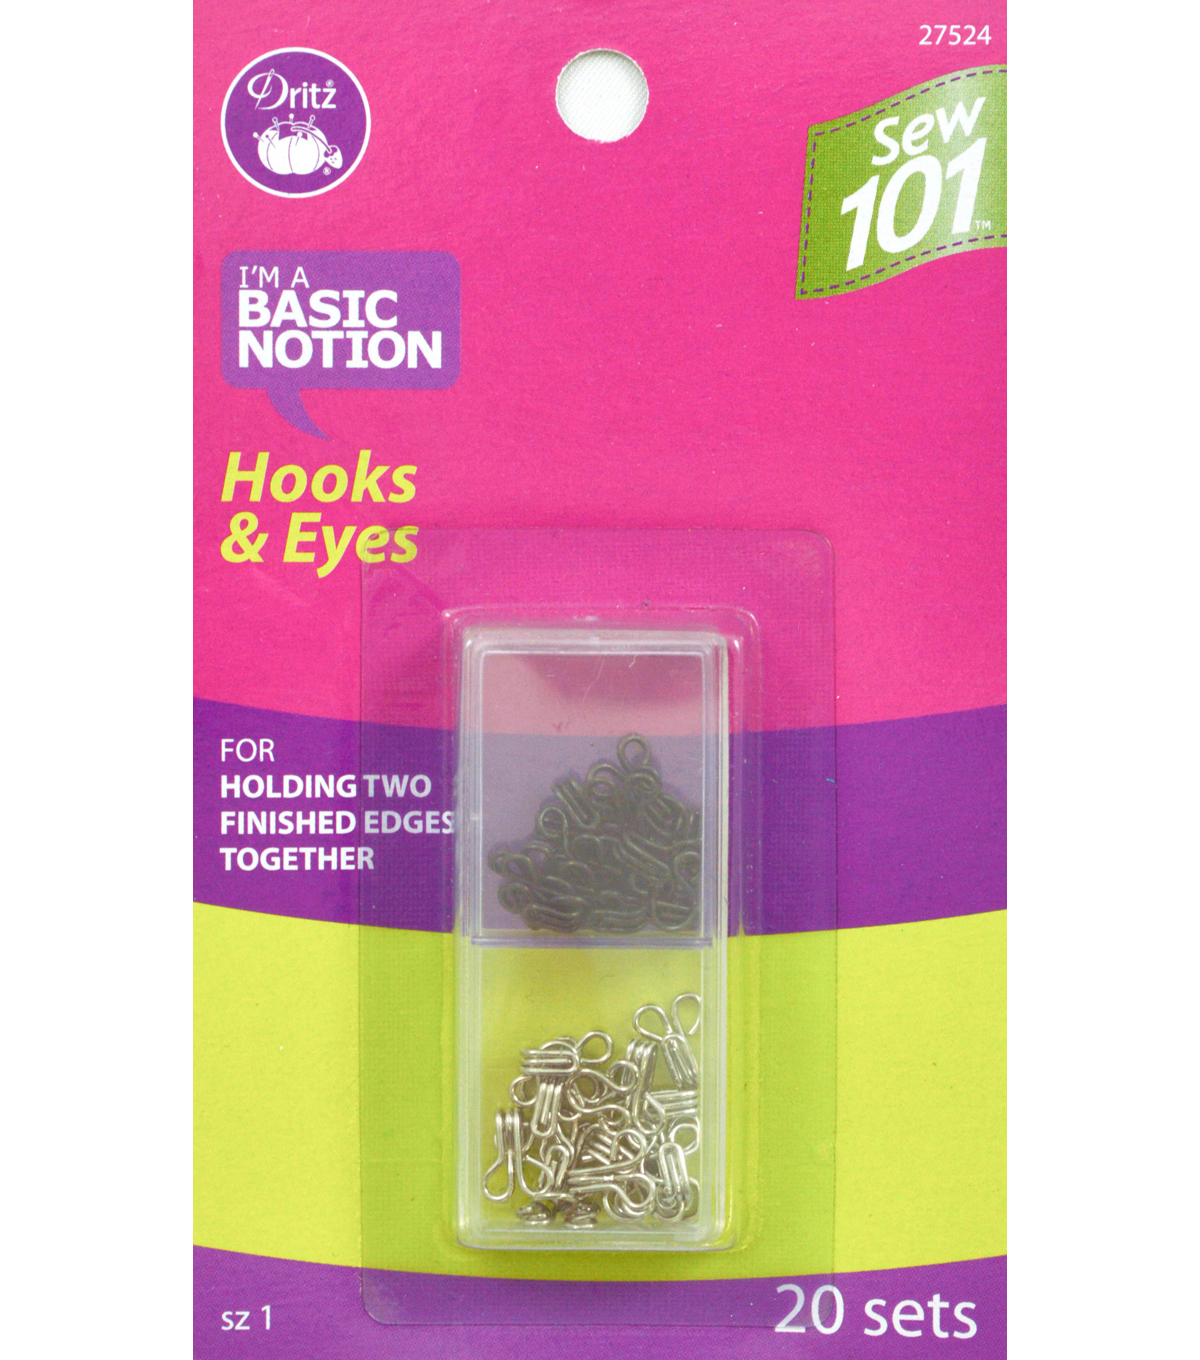 Dritz Sewing 101 Hooks And Eyes Nickel Black Size 1